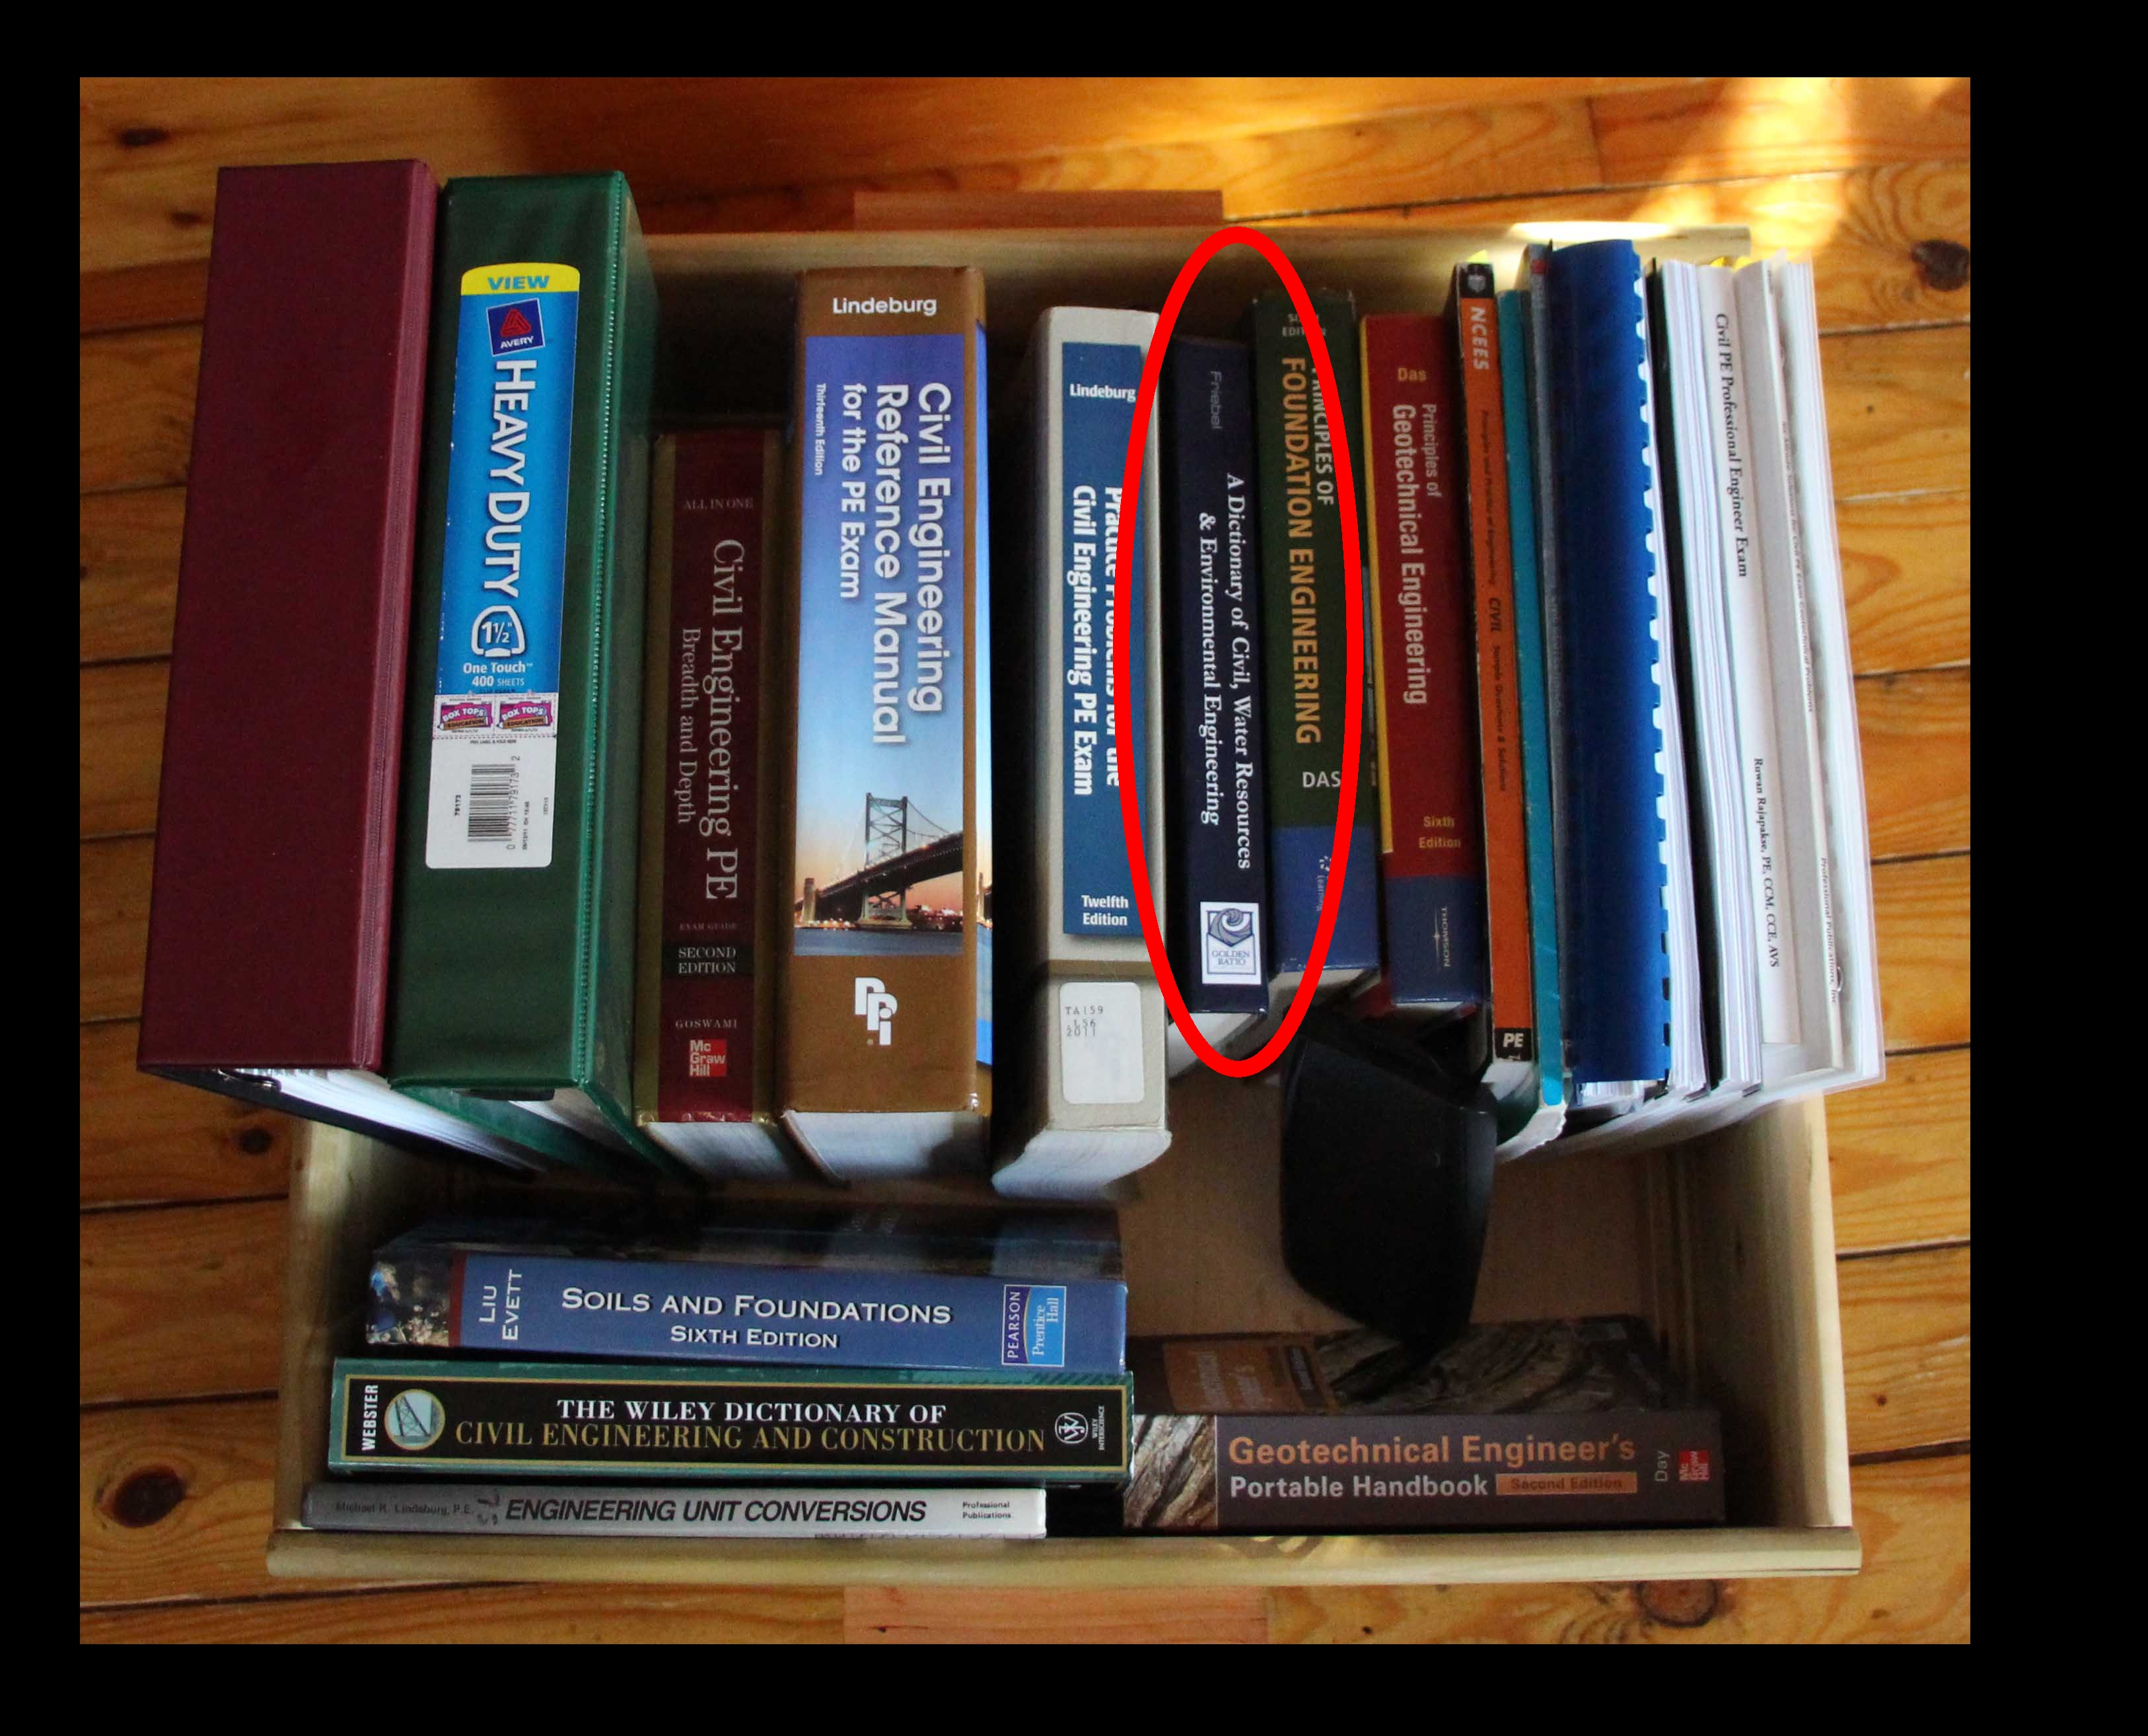 Best method to carry books into PE exam? | Golden Ratio